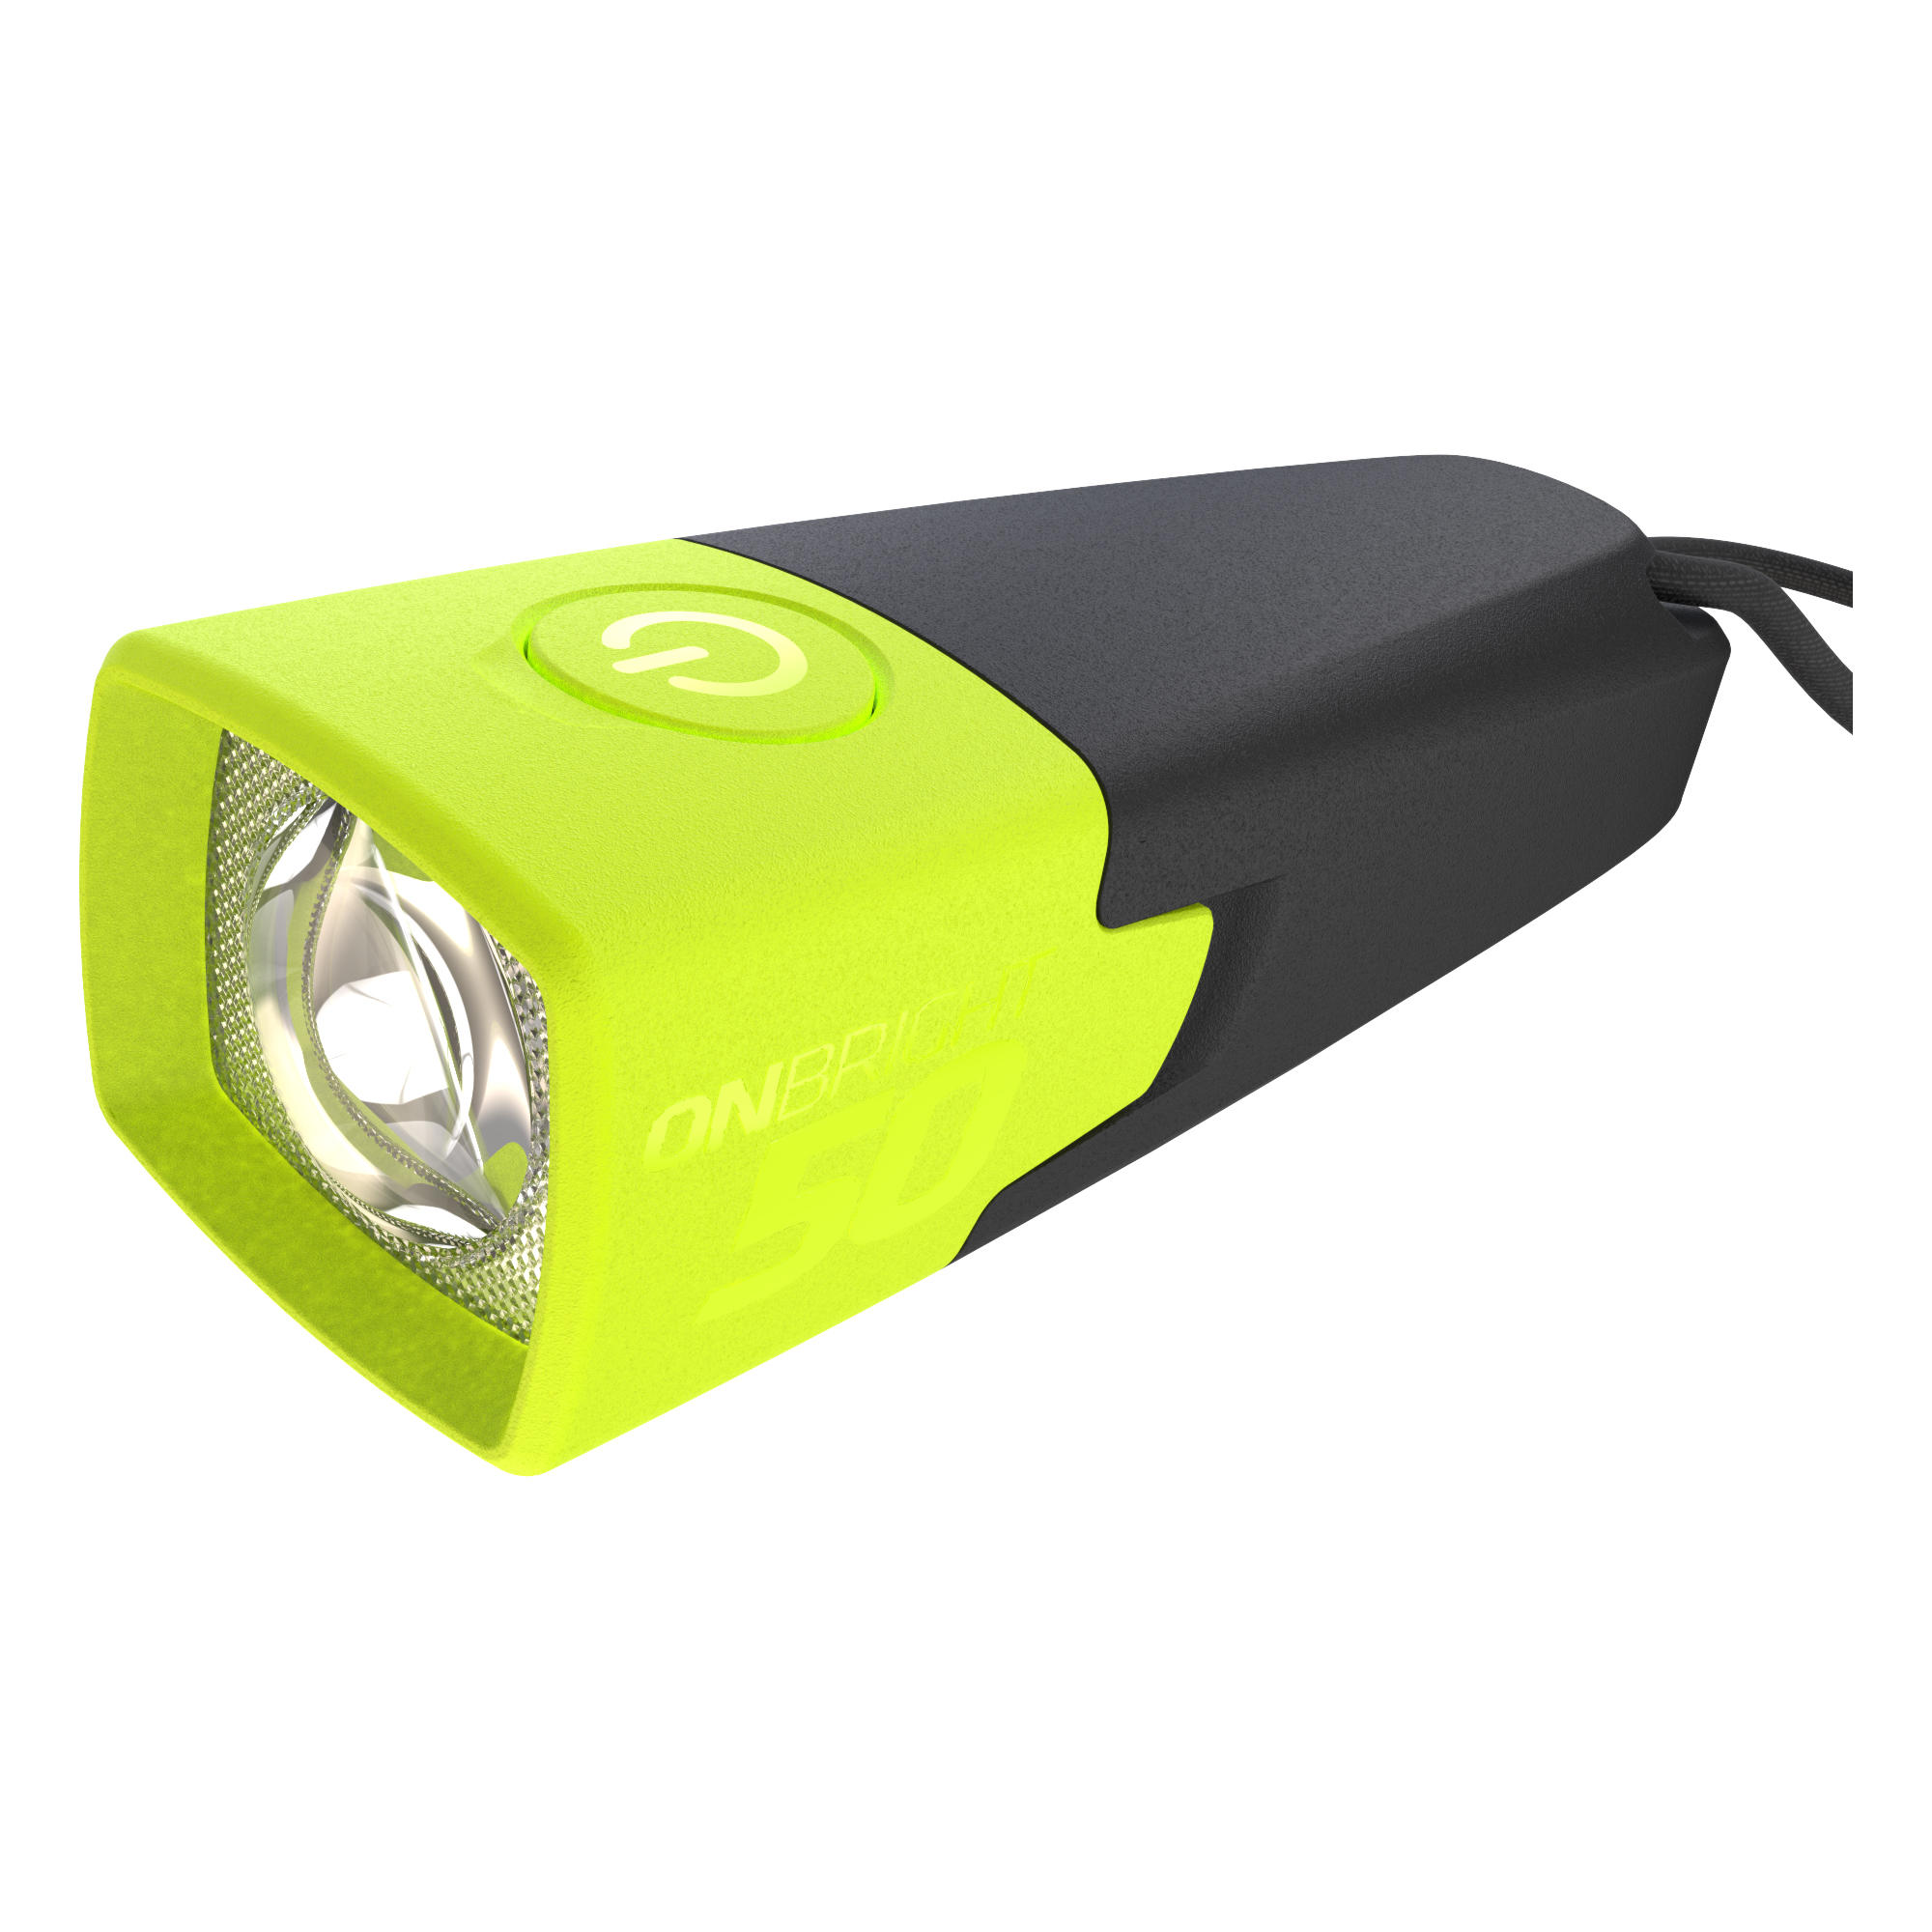 OnBright 50 Bivouac Torch - 10 Lumens - Yellow